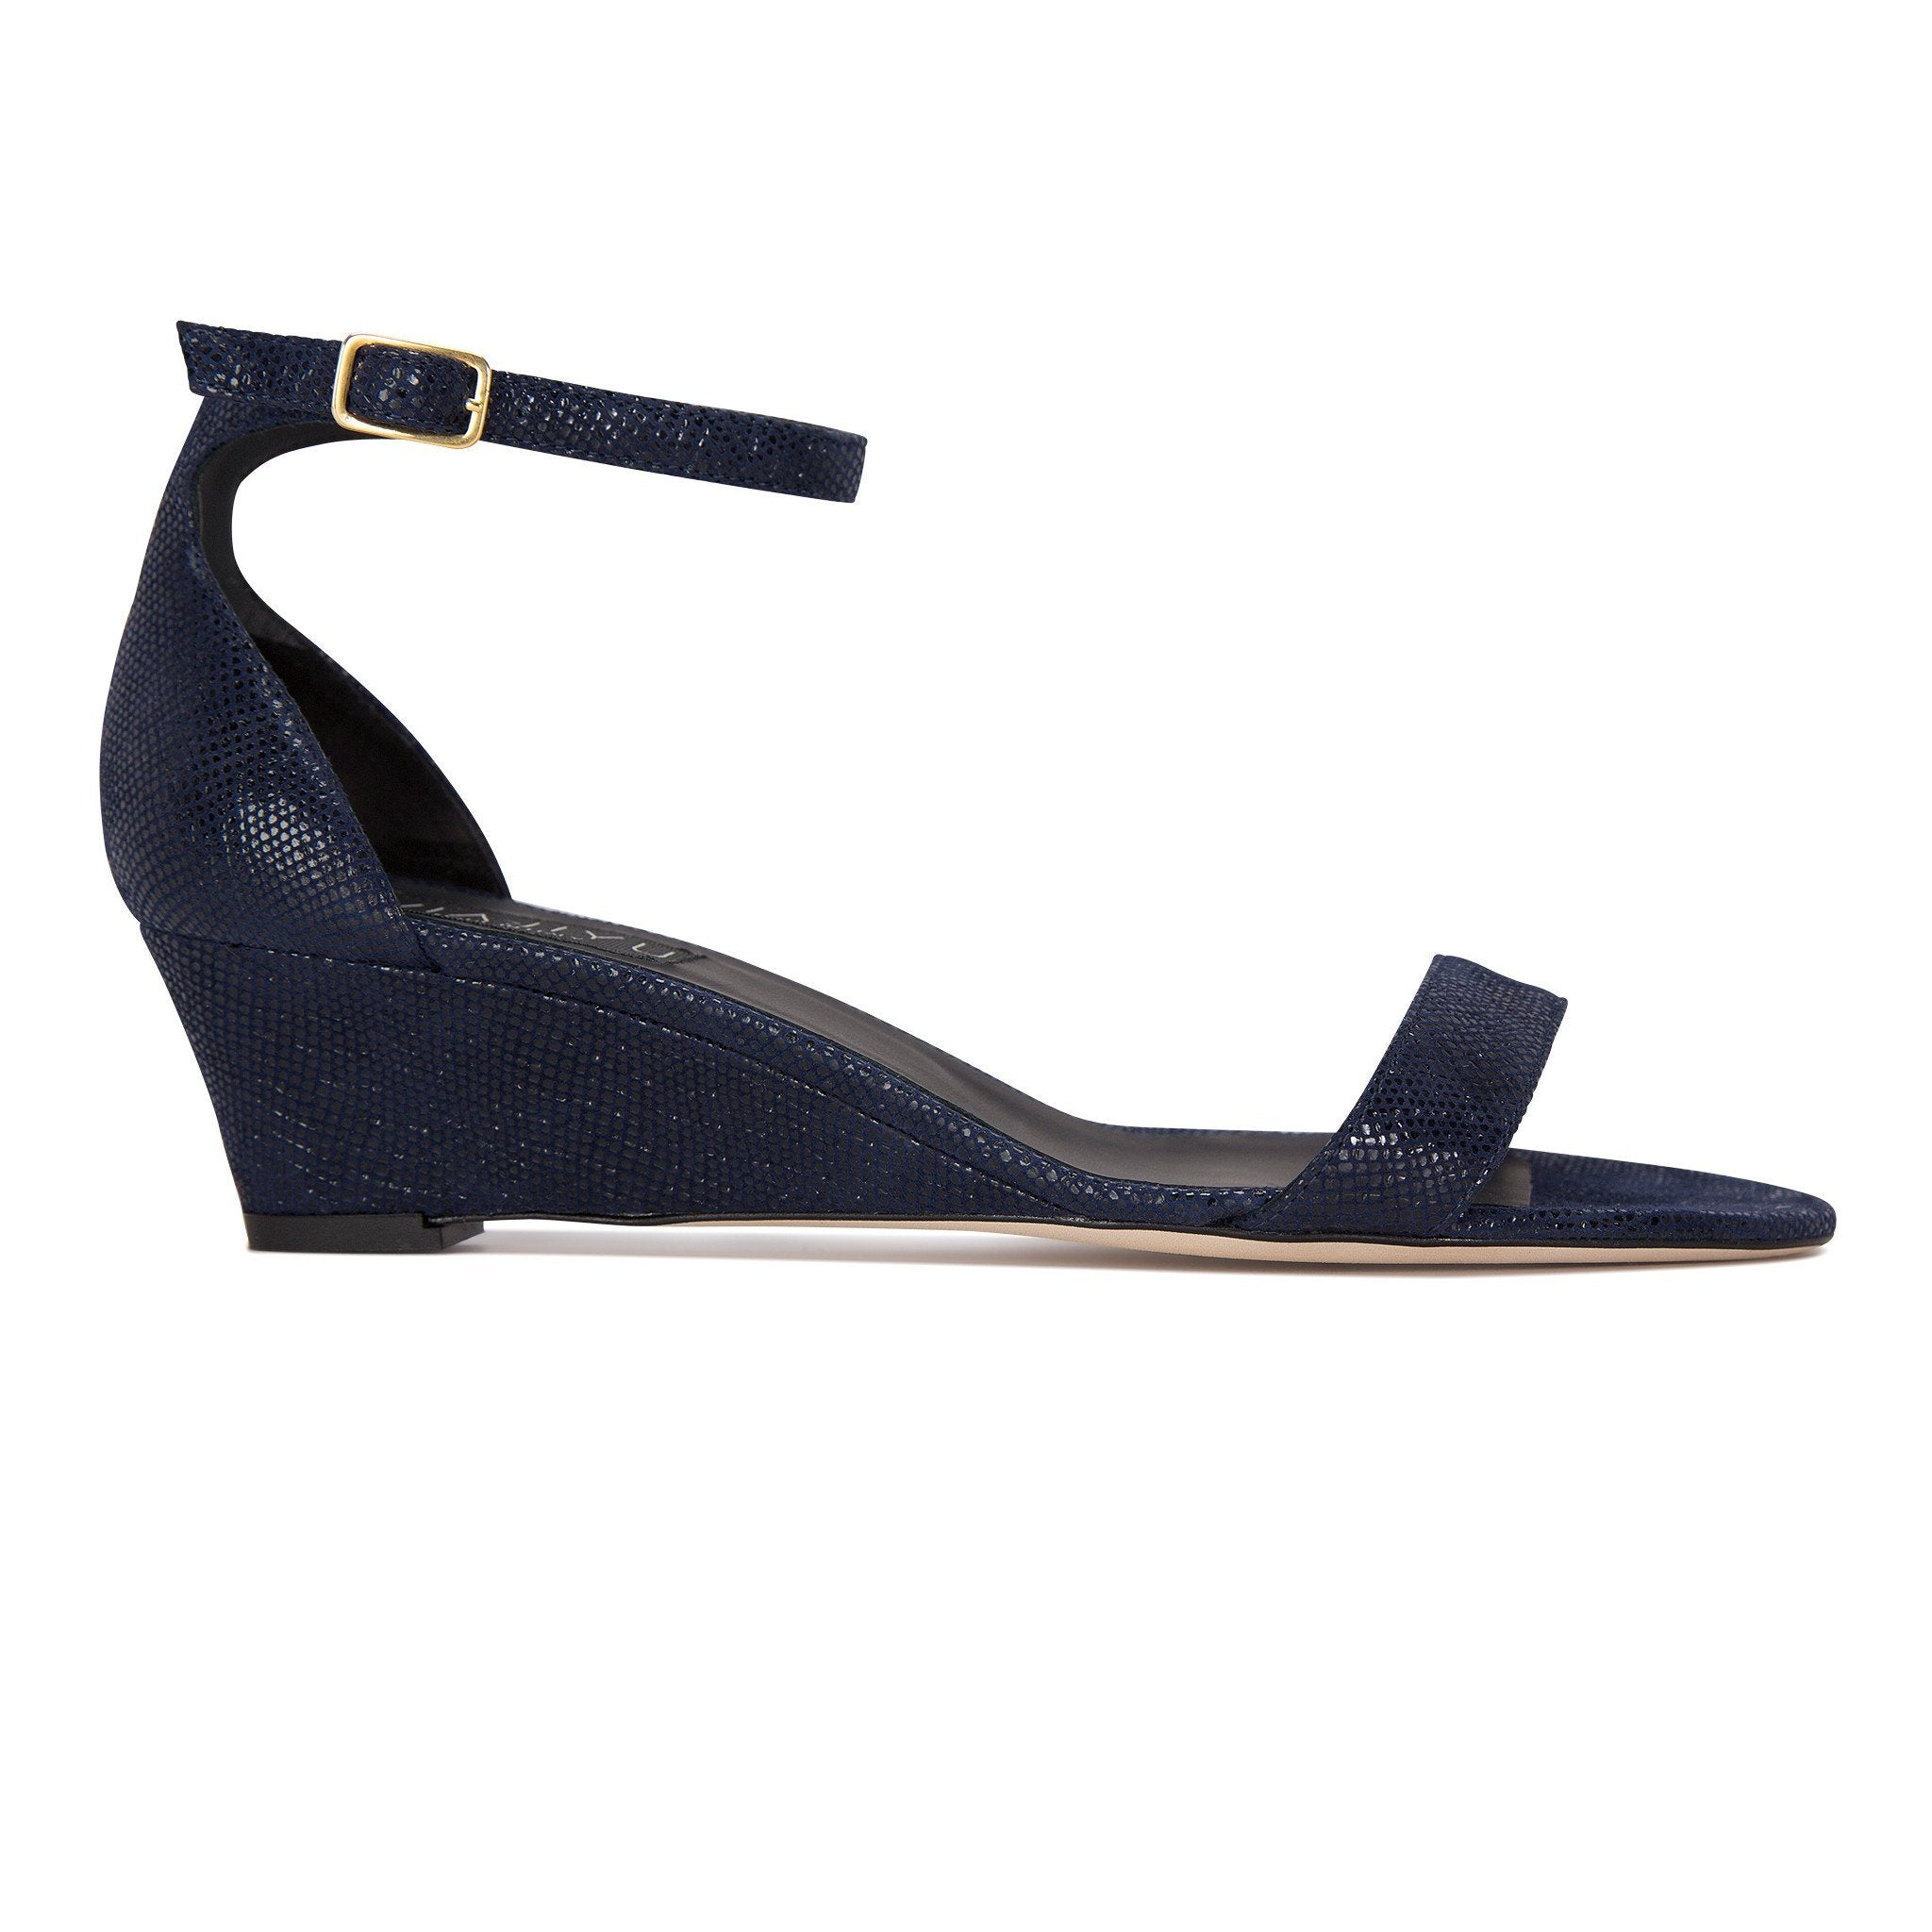 SAVONA - Karung Midnight, VIAJIYU - Women's Hand Made Sustainable Luxury Shoes. Made in Italy. Made to Order.